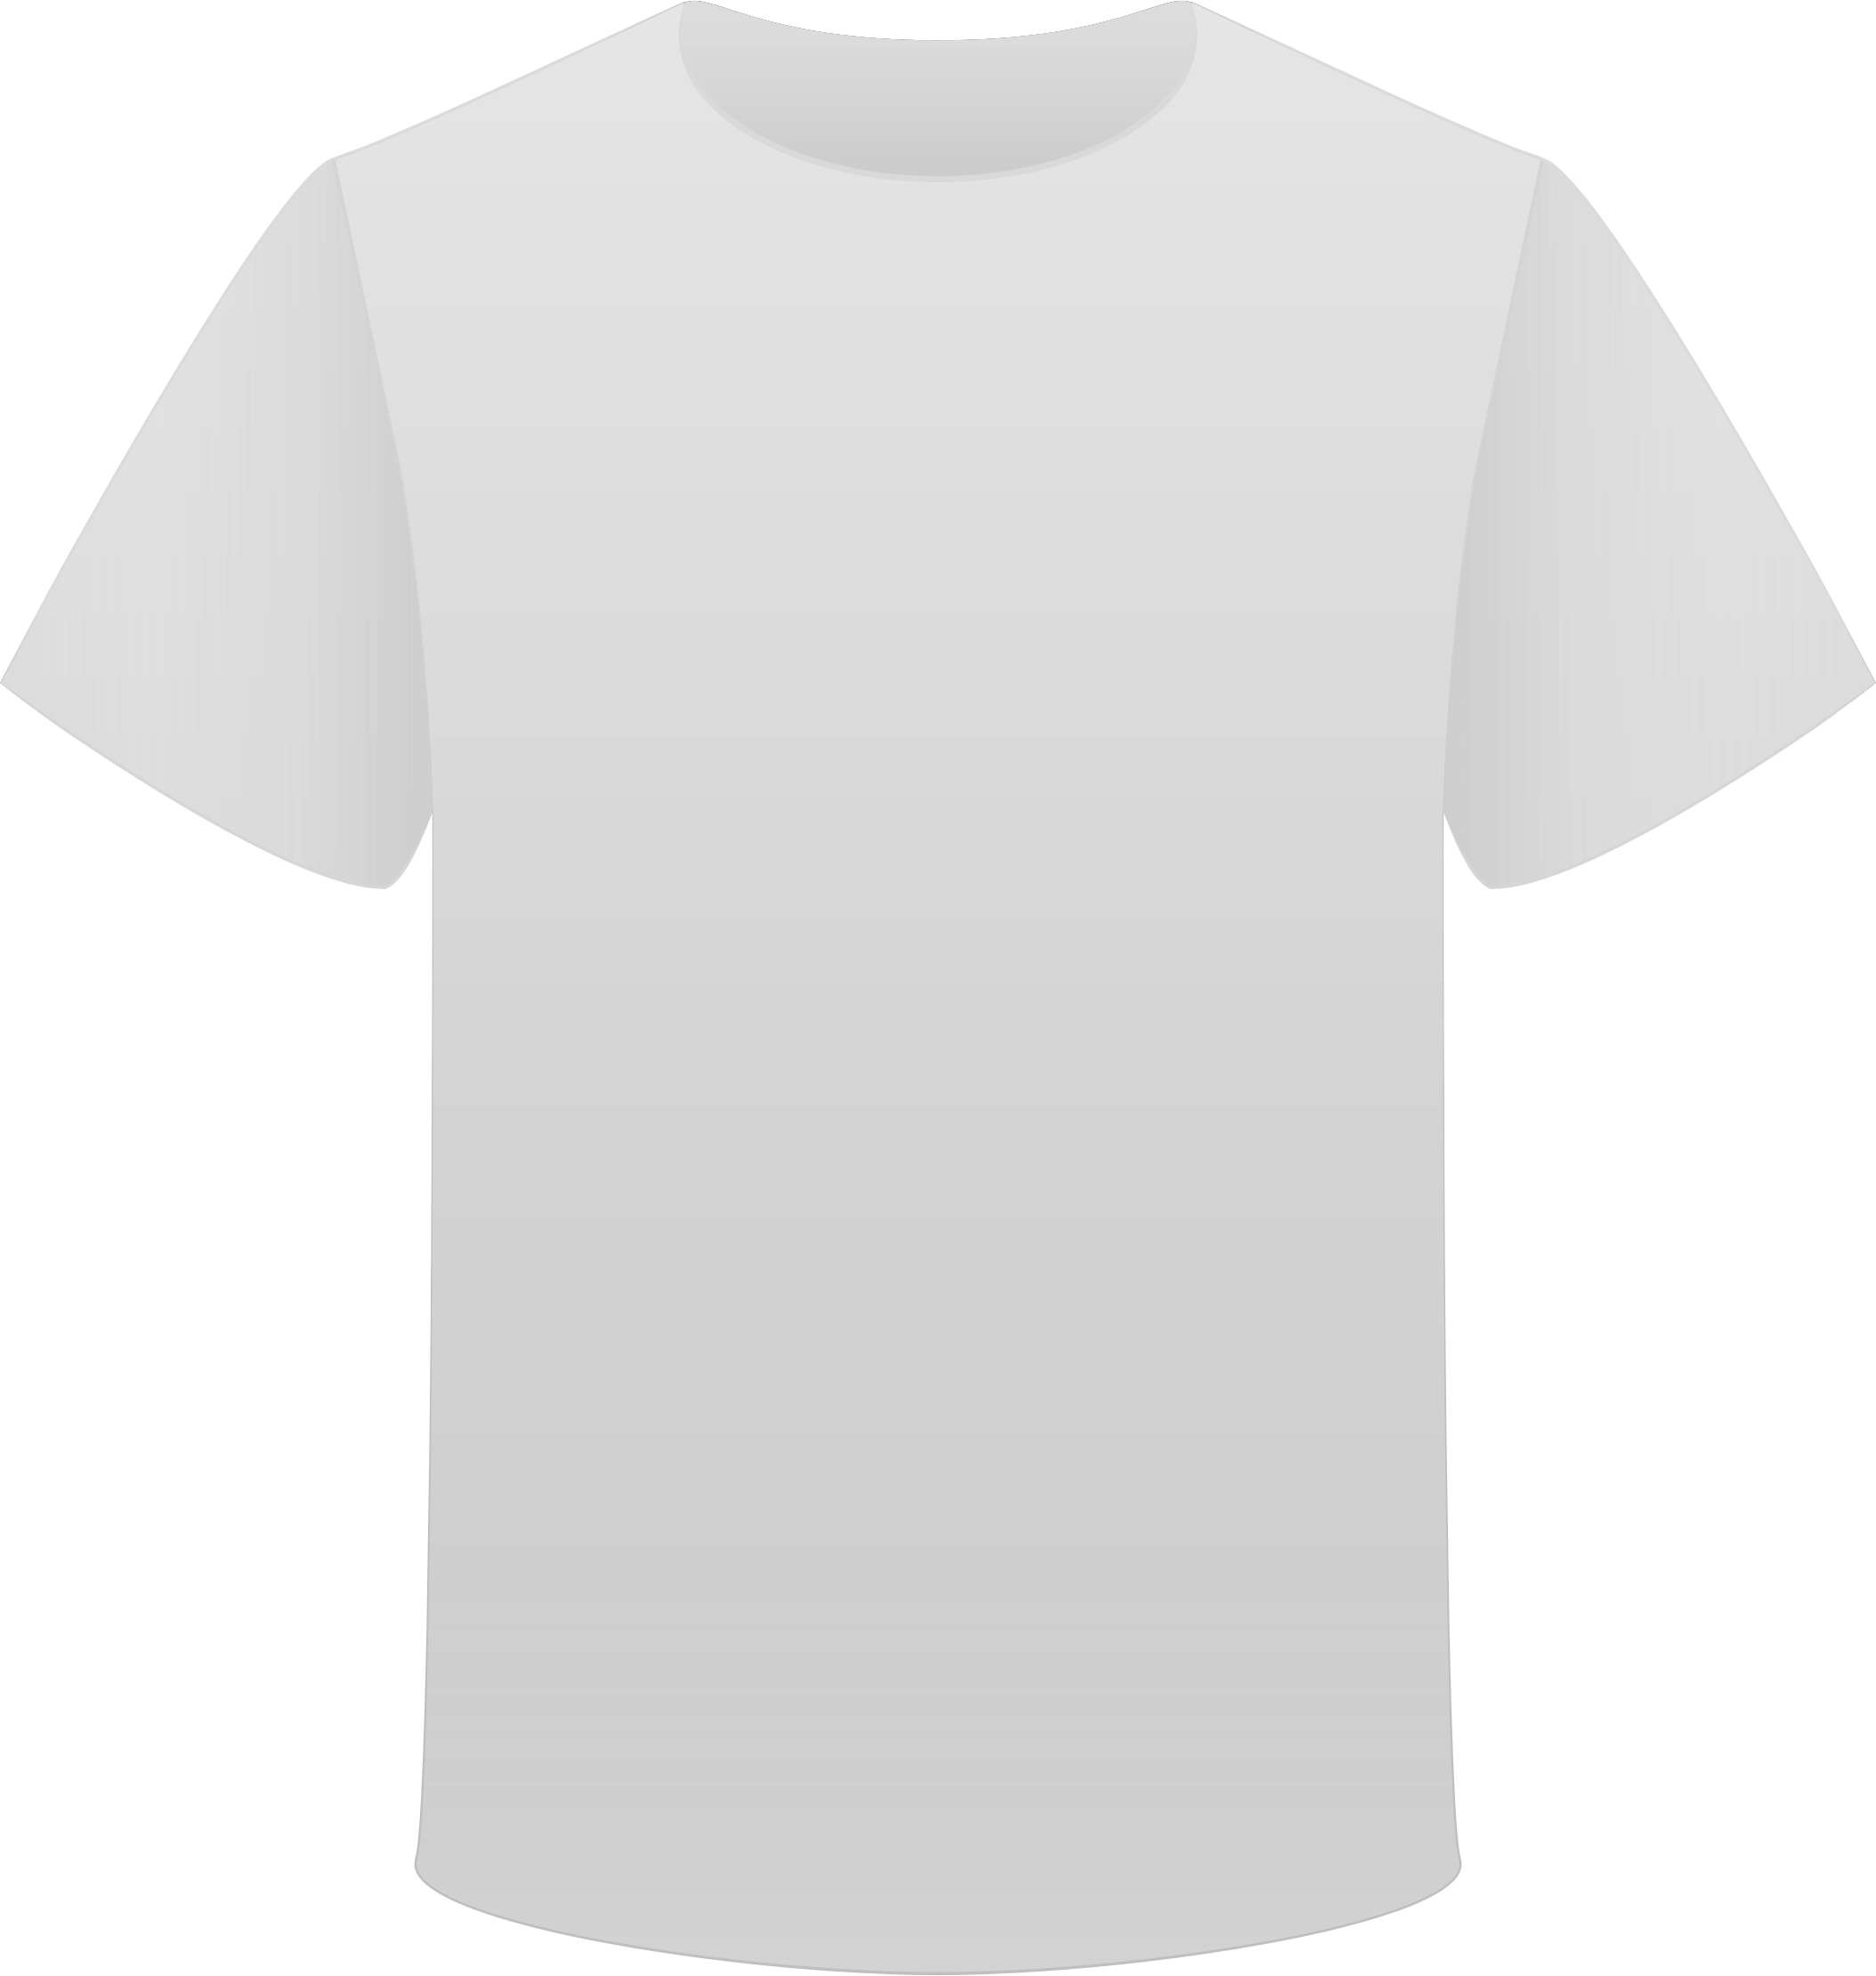 Tshirt Grey Back transparent PNG.